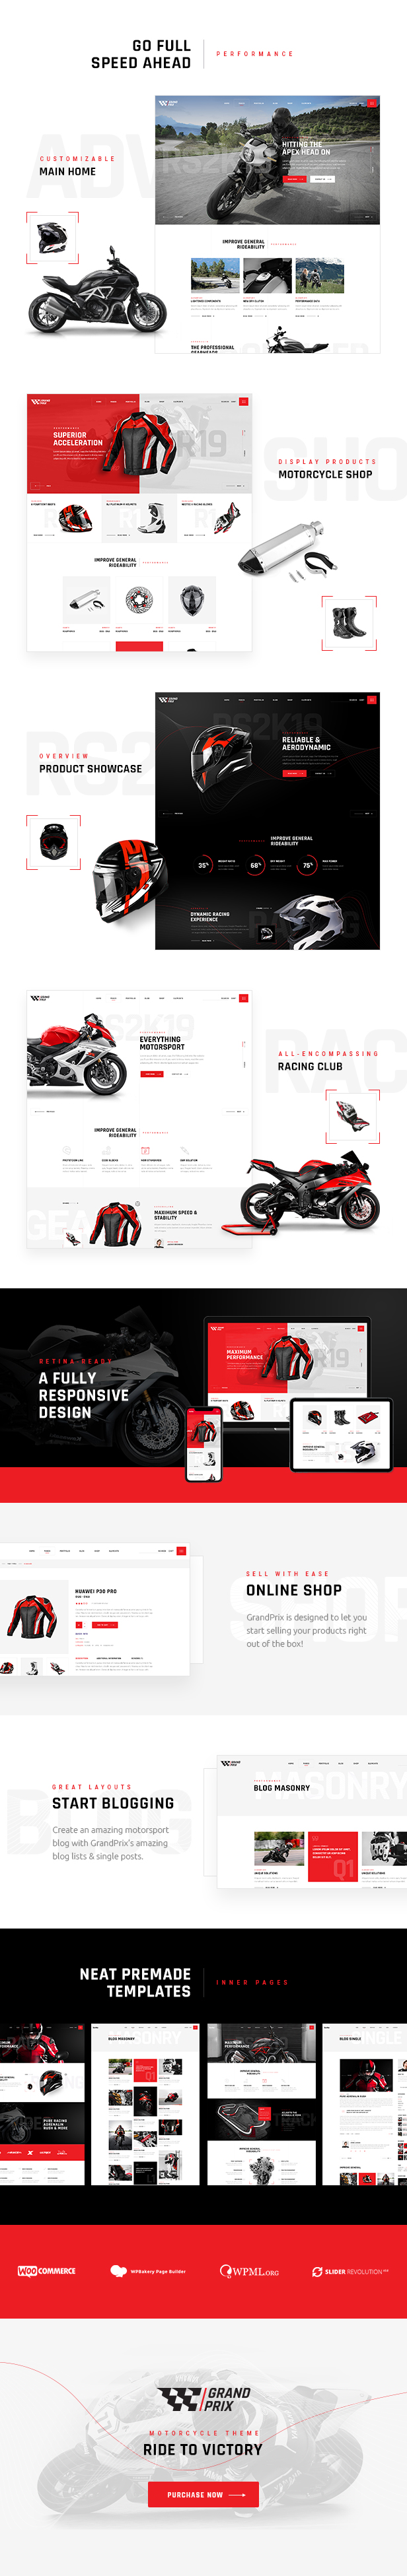 GrandPrix - Motorcycle WordPress Theme - 1